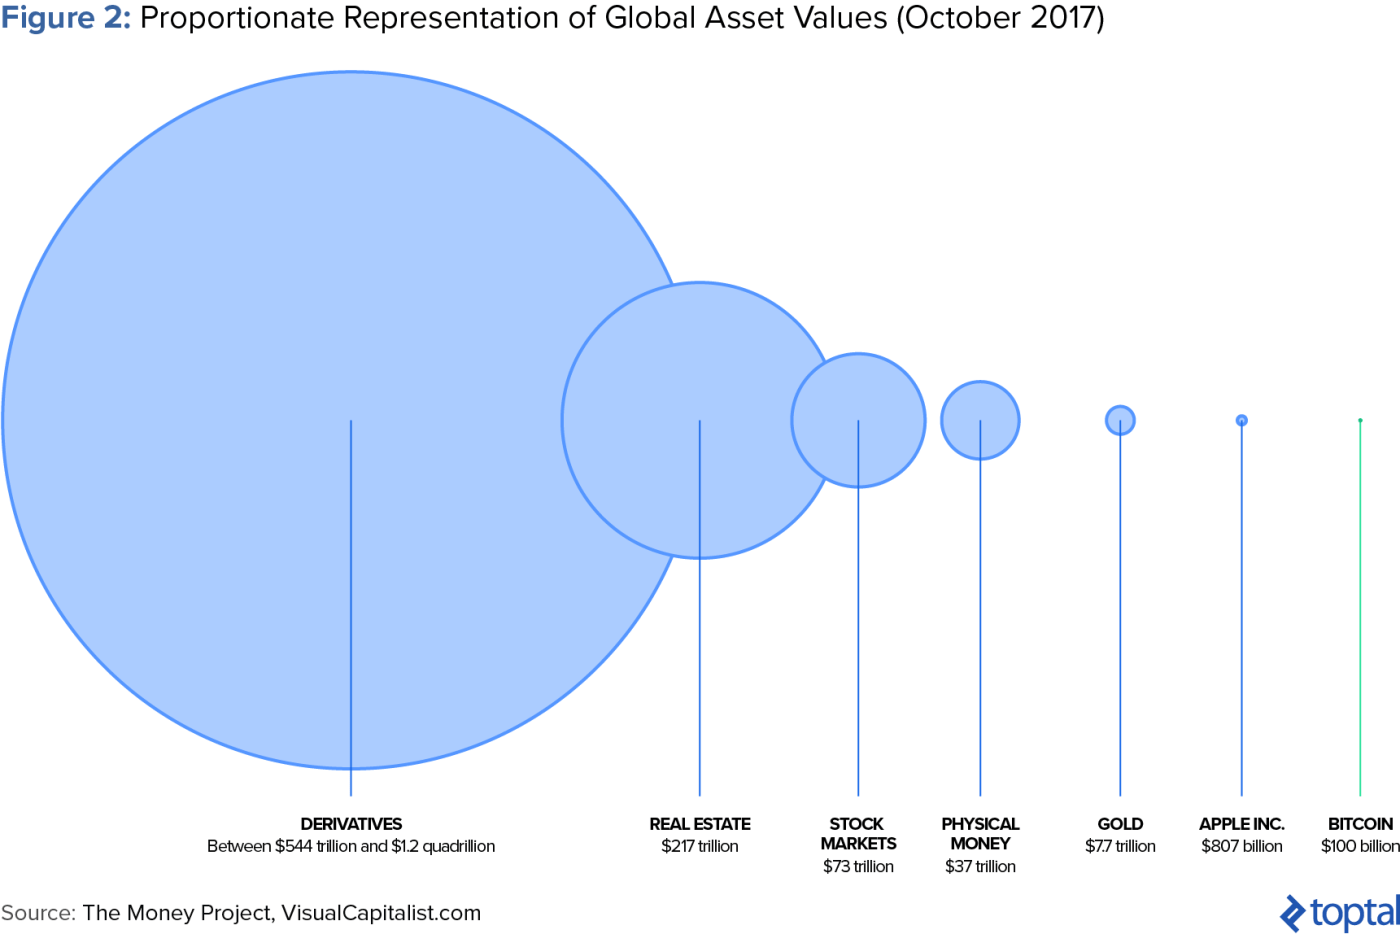 Proportionate Representation of Global Asset Values (October 2017)